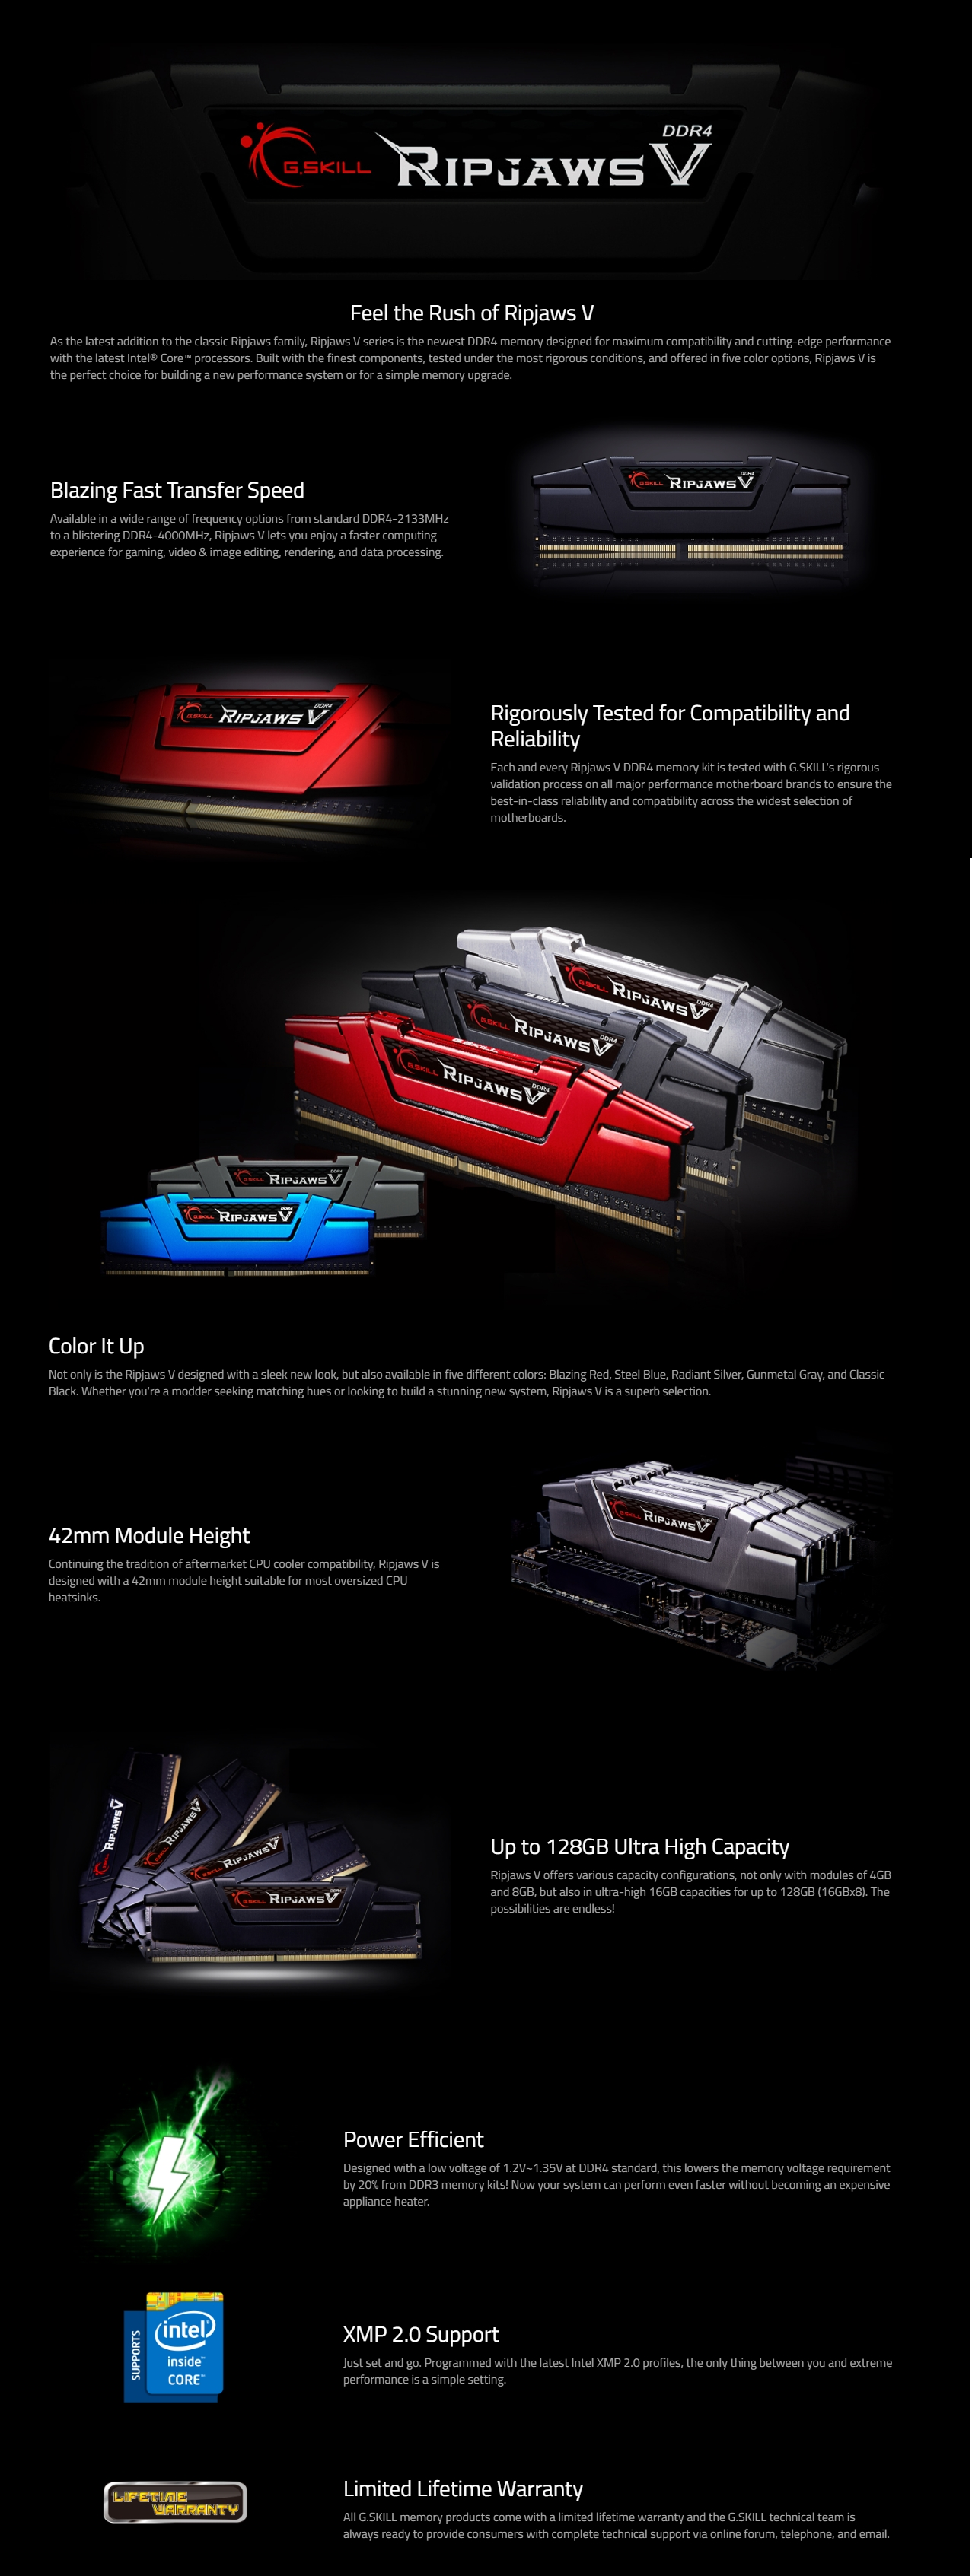 A large marketing image providing additional information about the product G.Skill 256GB Kit (8x32GB) DDR4 Ripjaws V C16 3200Mhz - Additional alt info not provided